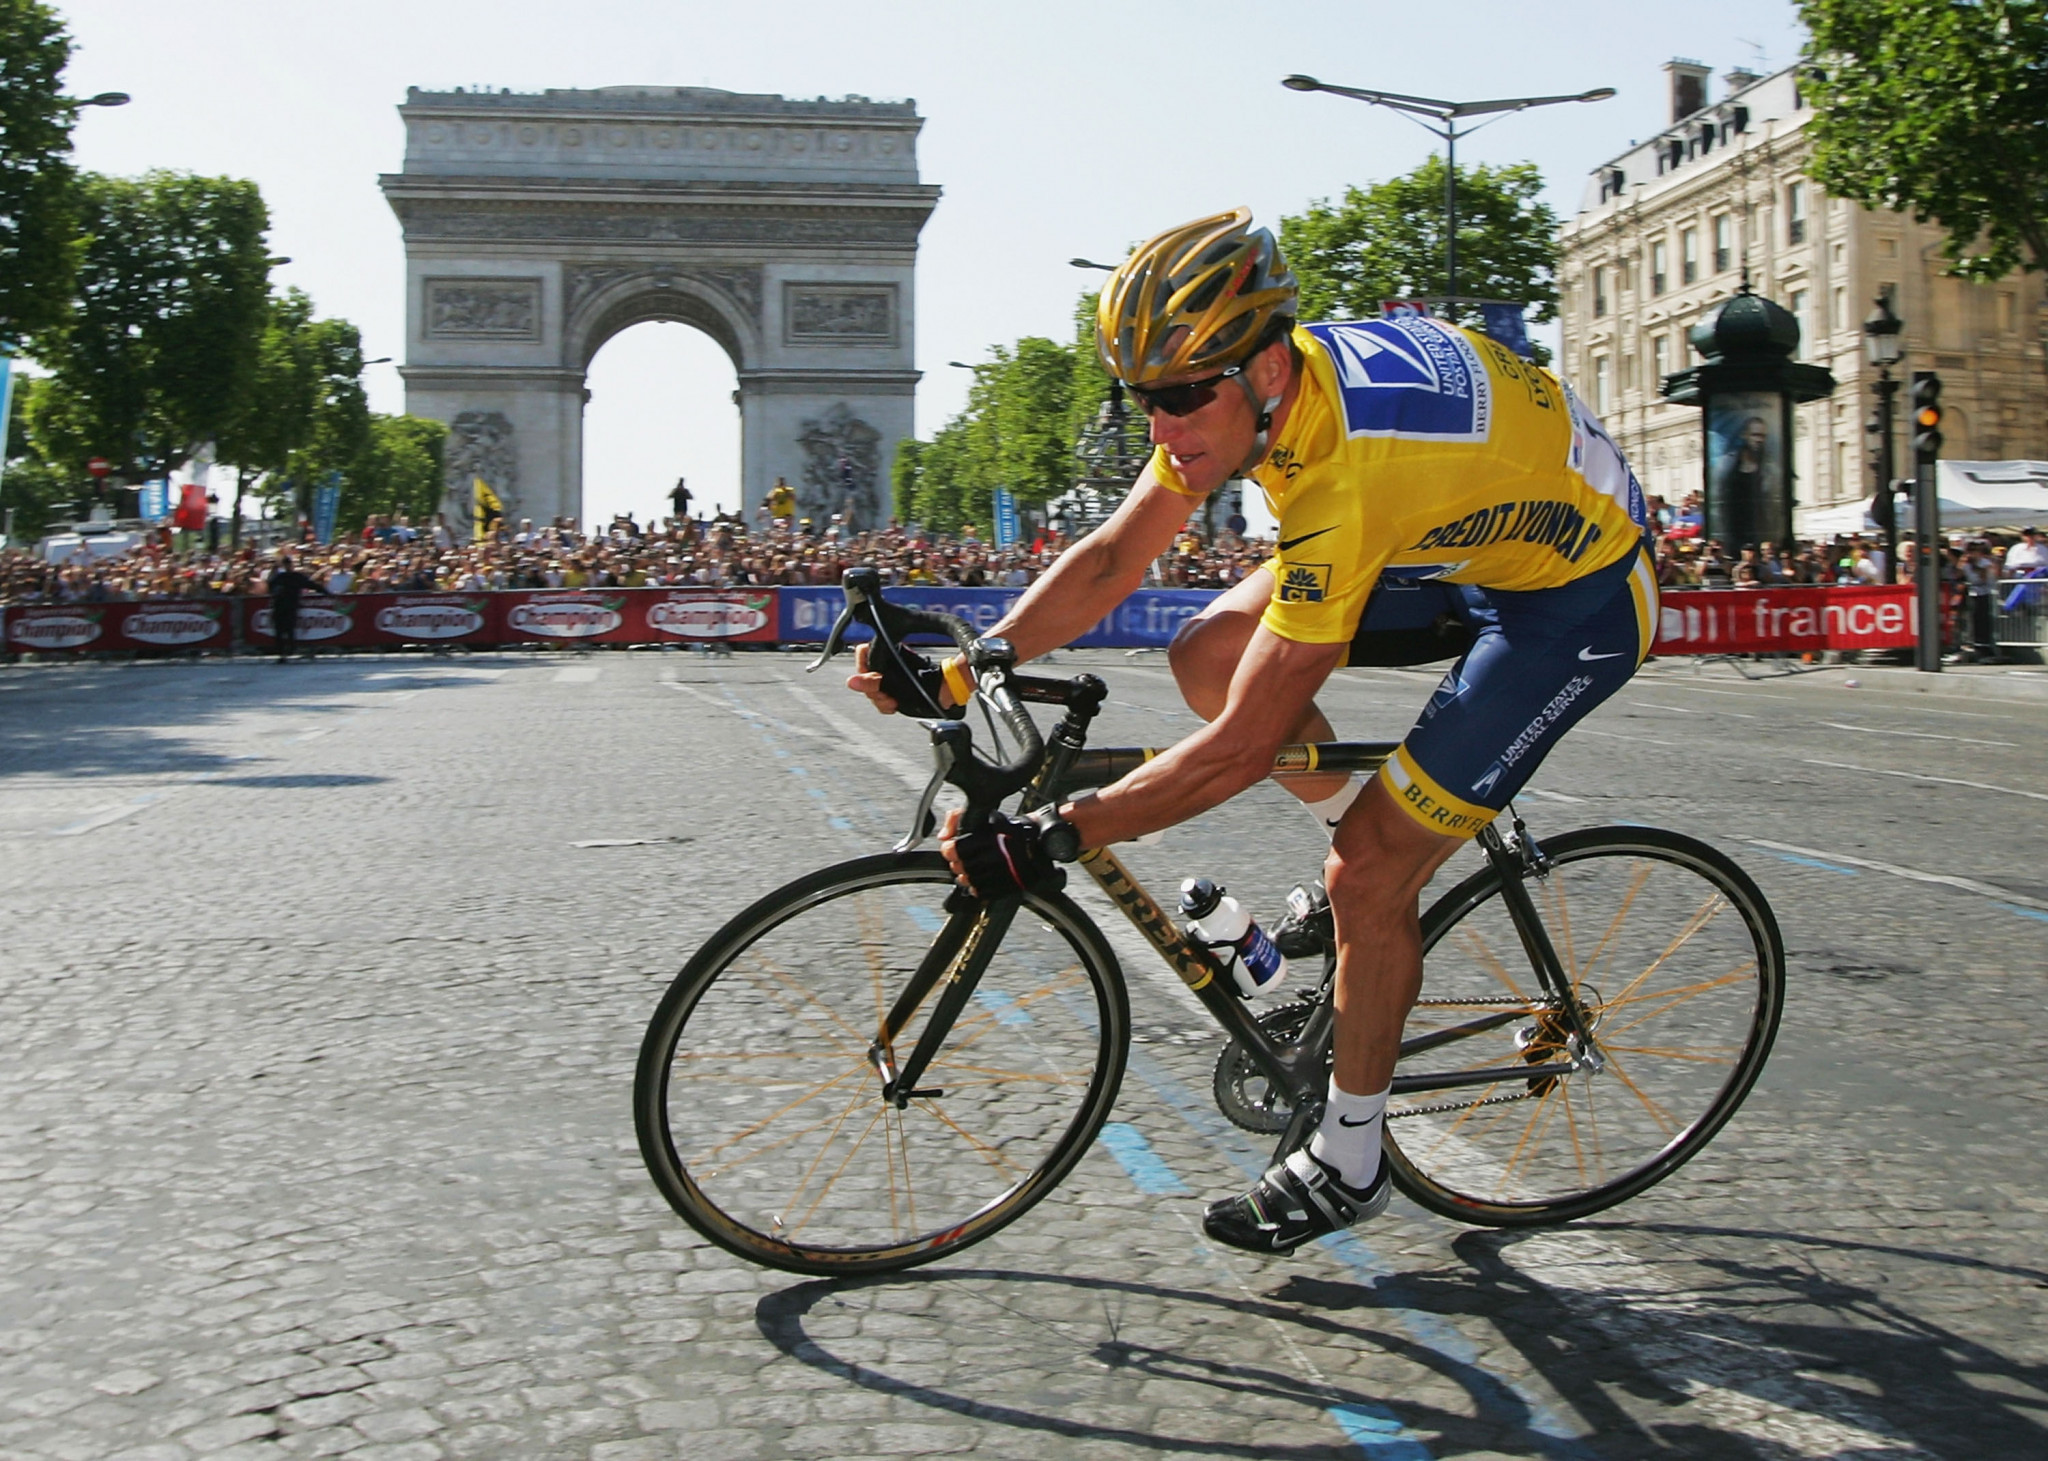 Bill Bock was lead counsel on USADA's investigation of Lance Armstrong ©Getty Images